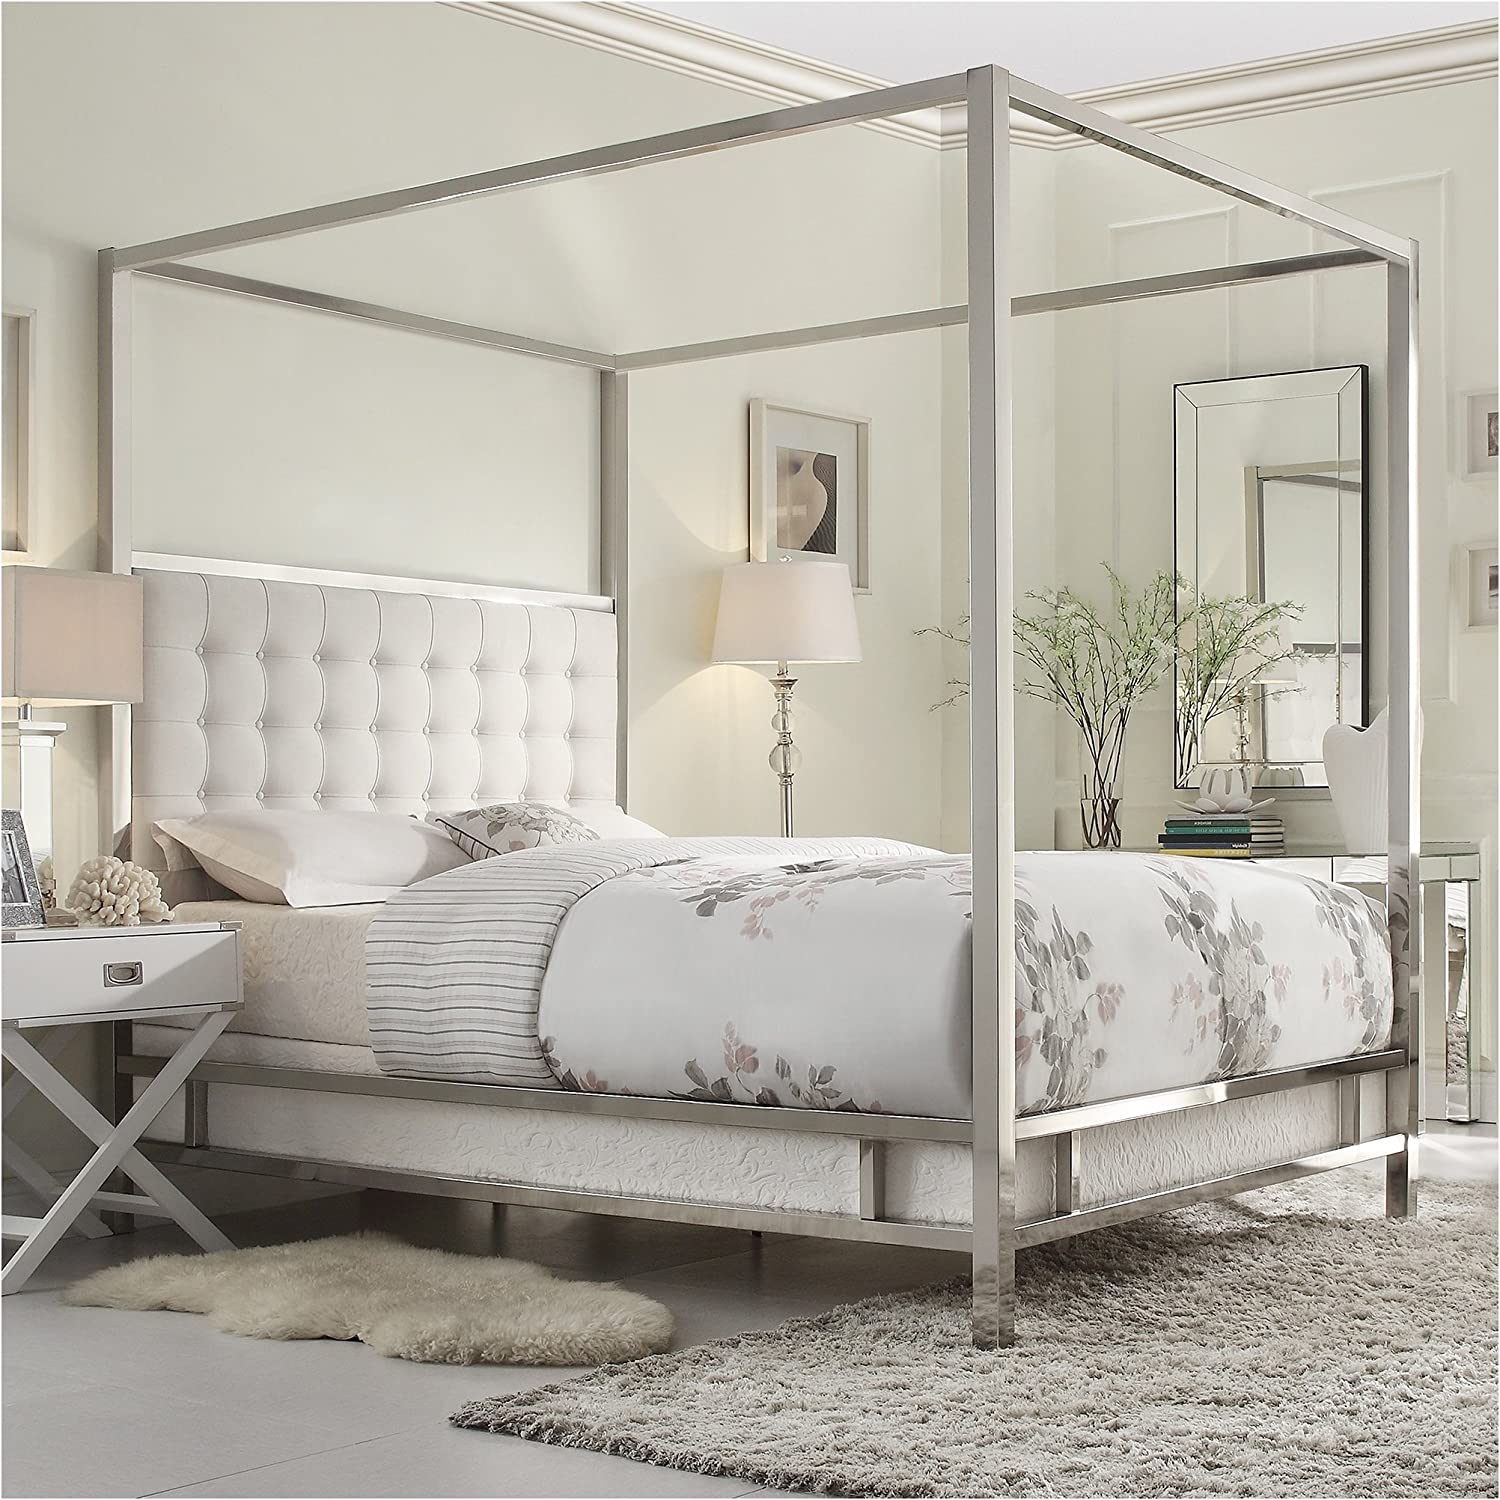 Amazon Com Modern Square Polished Chrome Canopy Poster Queen Bed